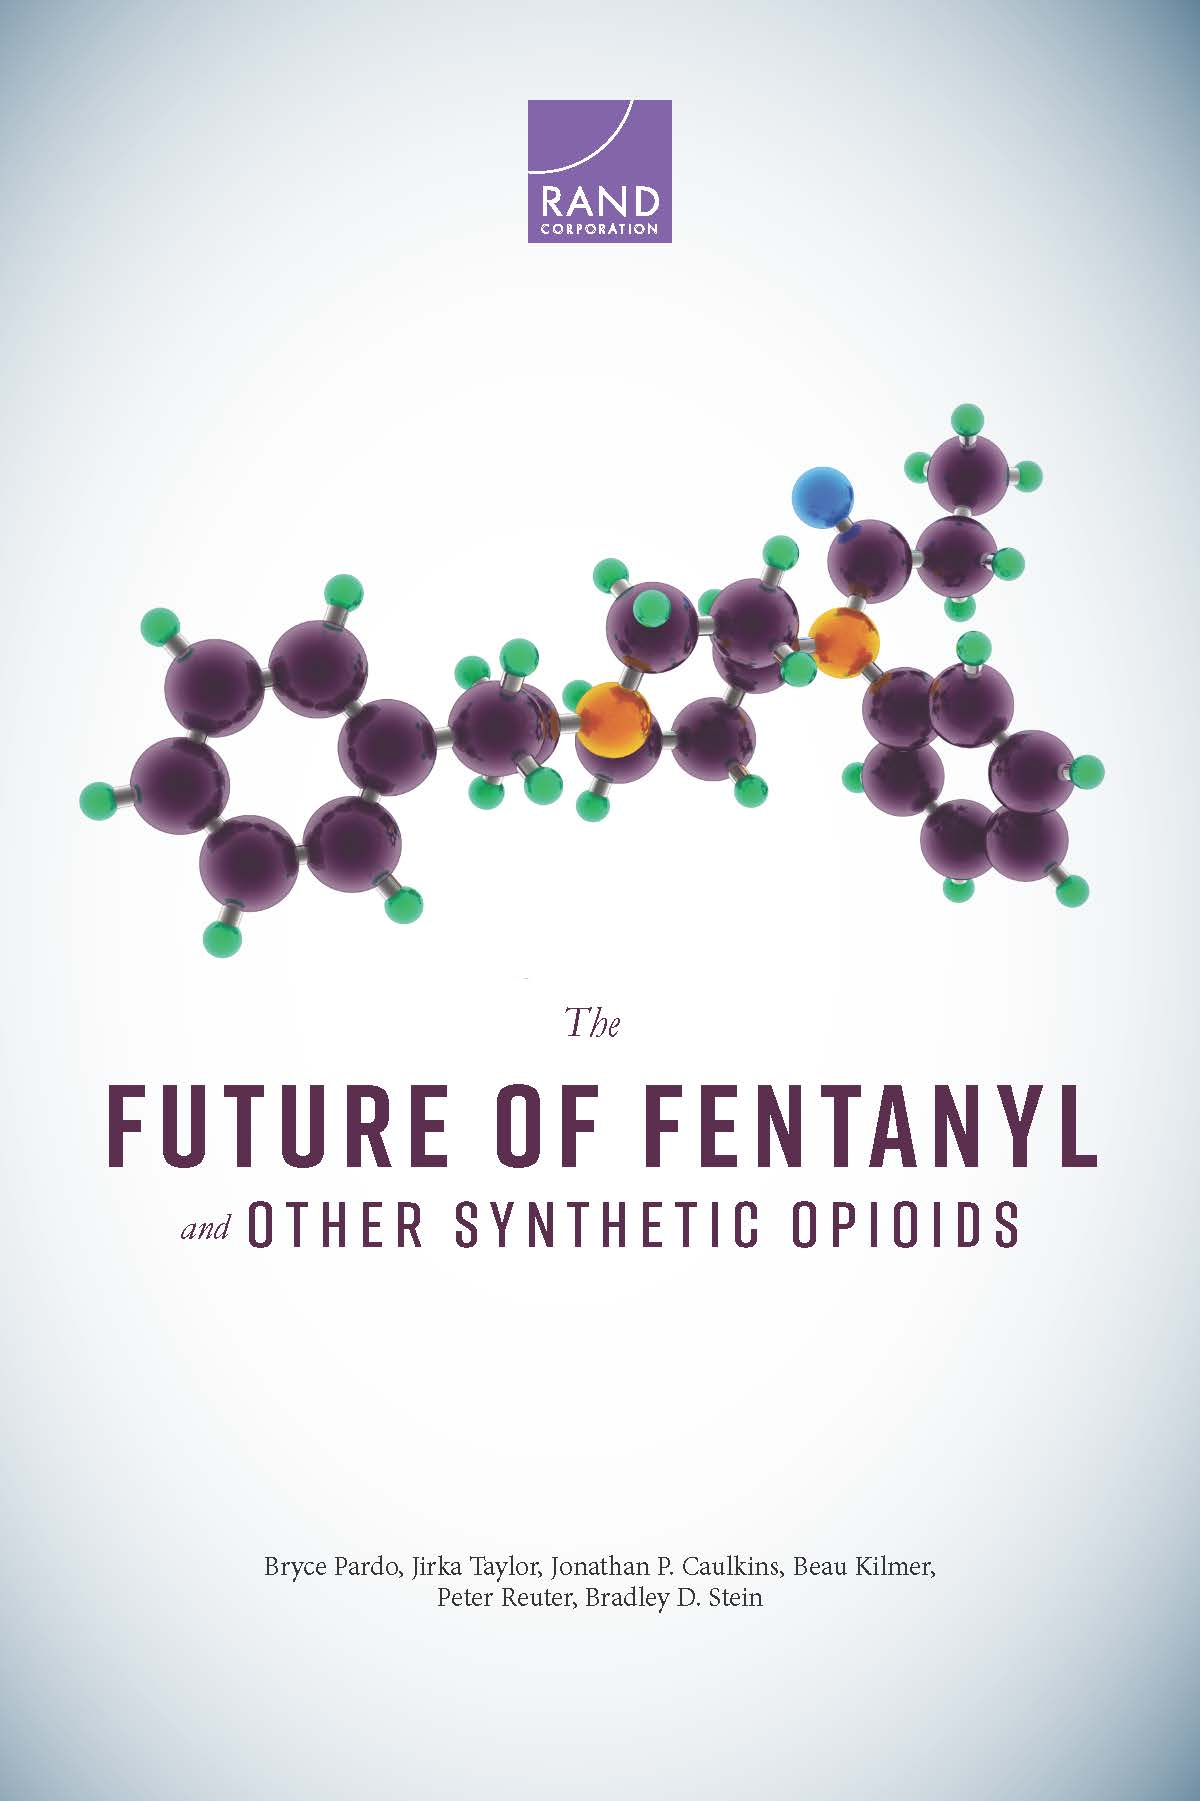 The Future of Fentanyl and Other Synthetic Opioids - Book Cover